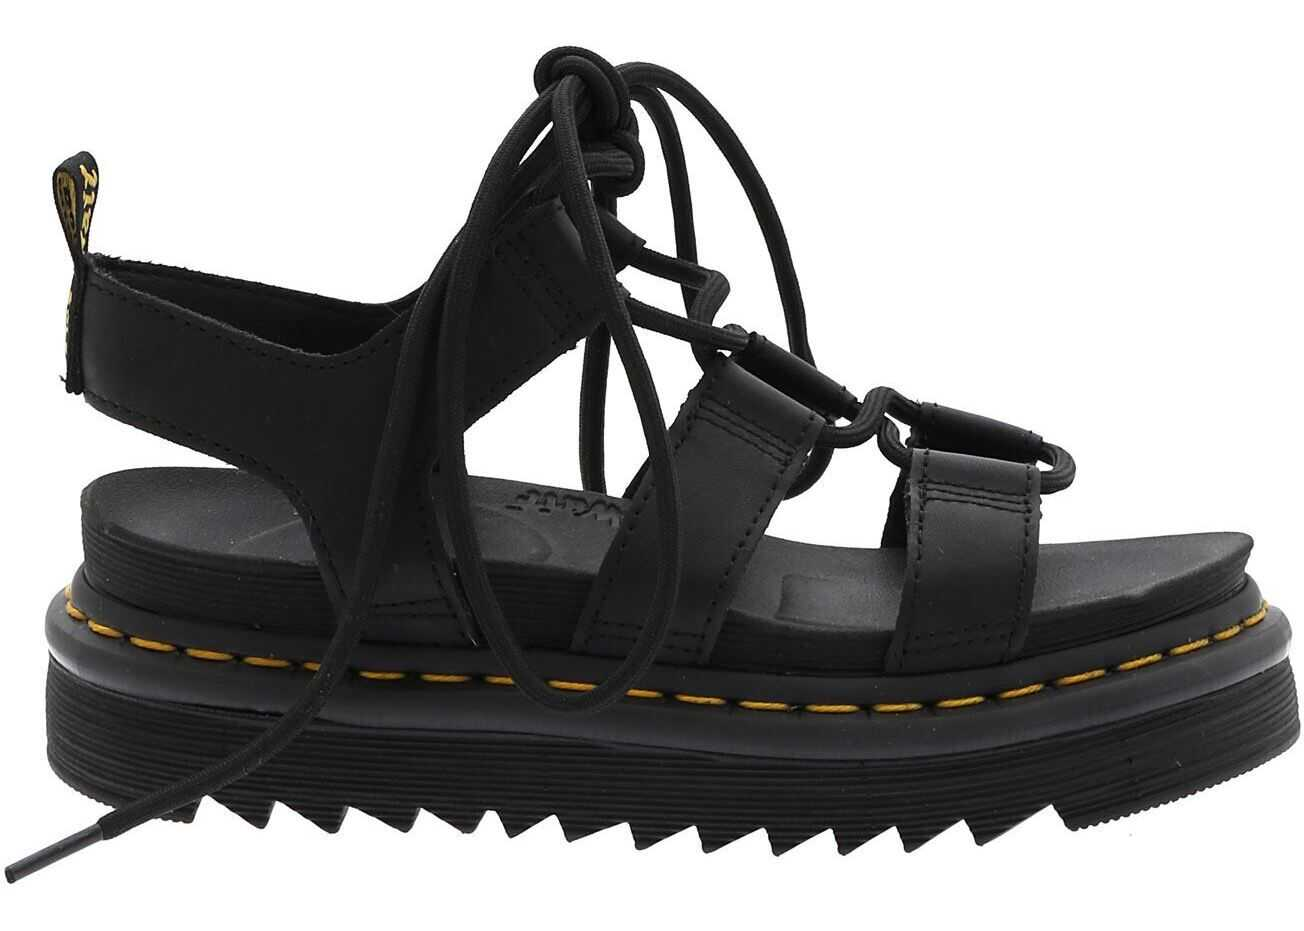 Dr. Martens Black Leather Nartilla Hydro Sandals Black